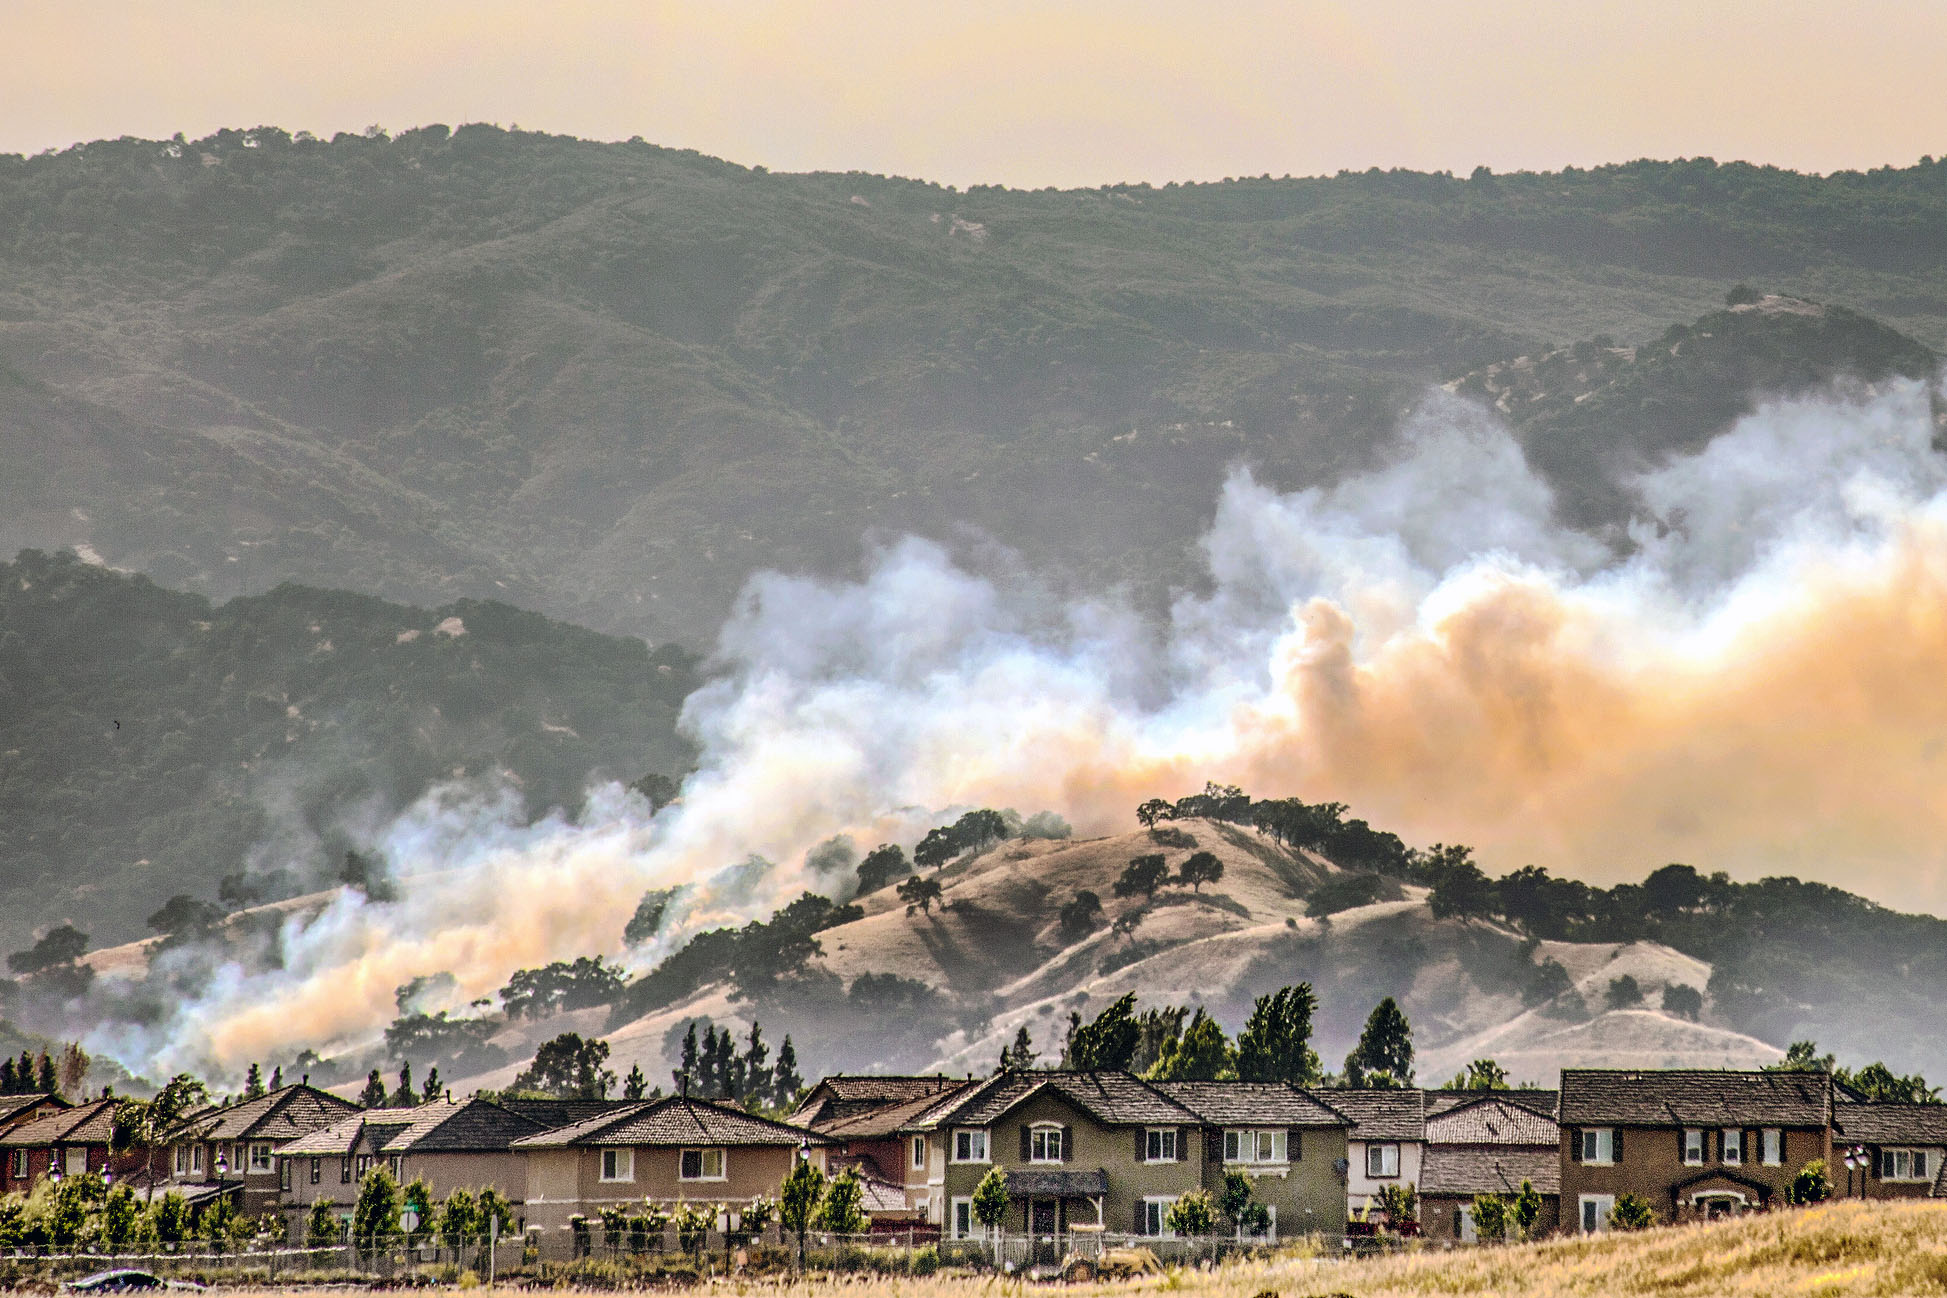 Smoke and mountains in the background, a neighborhood in the foreground.